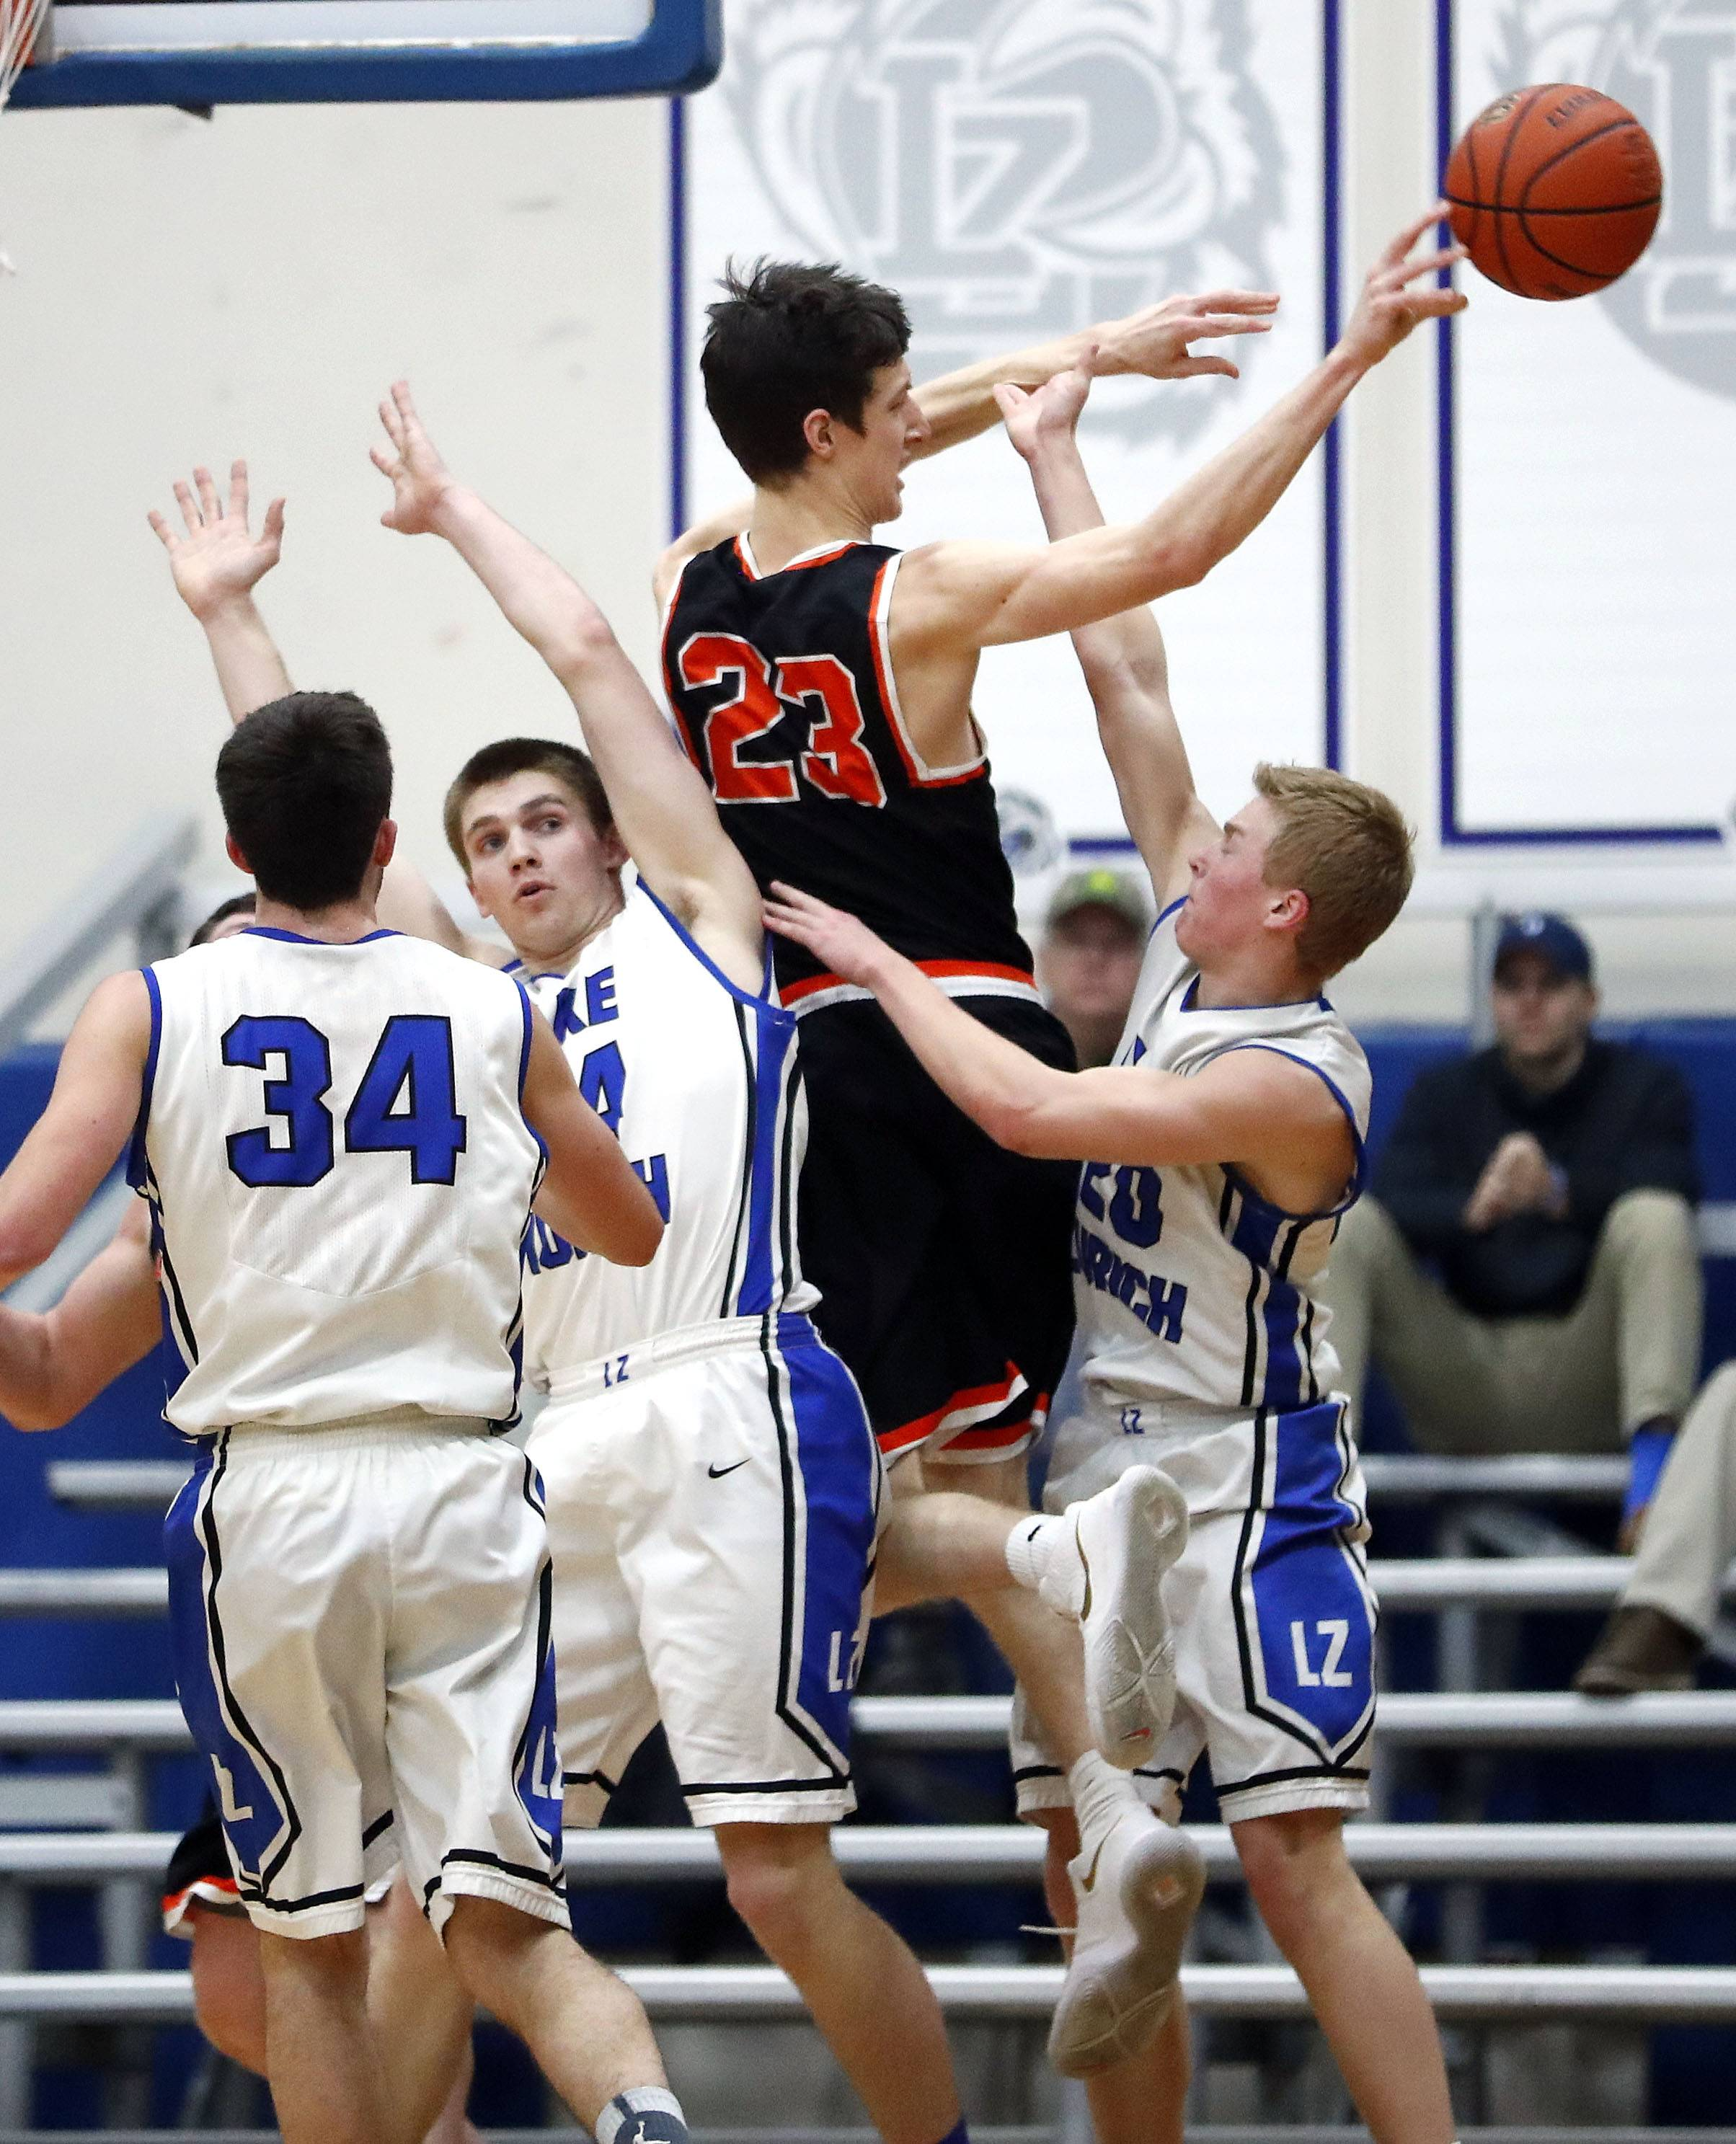 Libertyville's Drew Peterson dishes off around Lake Zurich's Ryan Kutsor and Joe Heffernan during the Class 4A sectional semifinal at Lake Zurich High School on Tuesday.